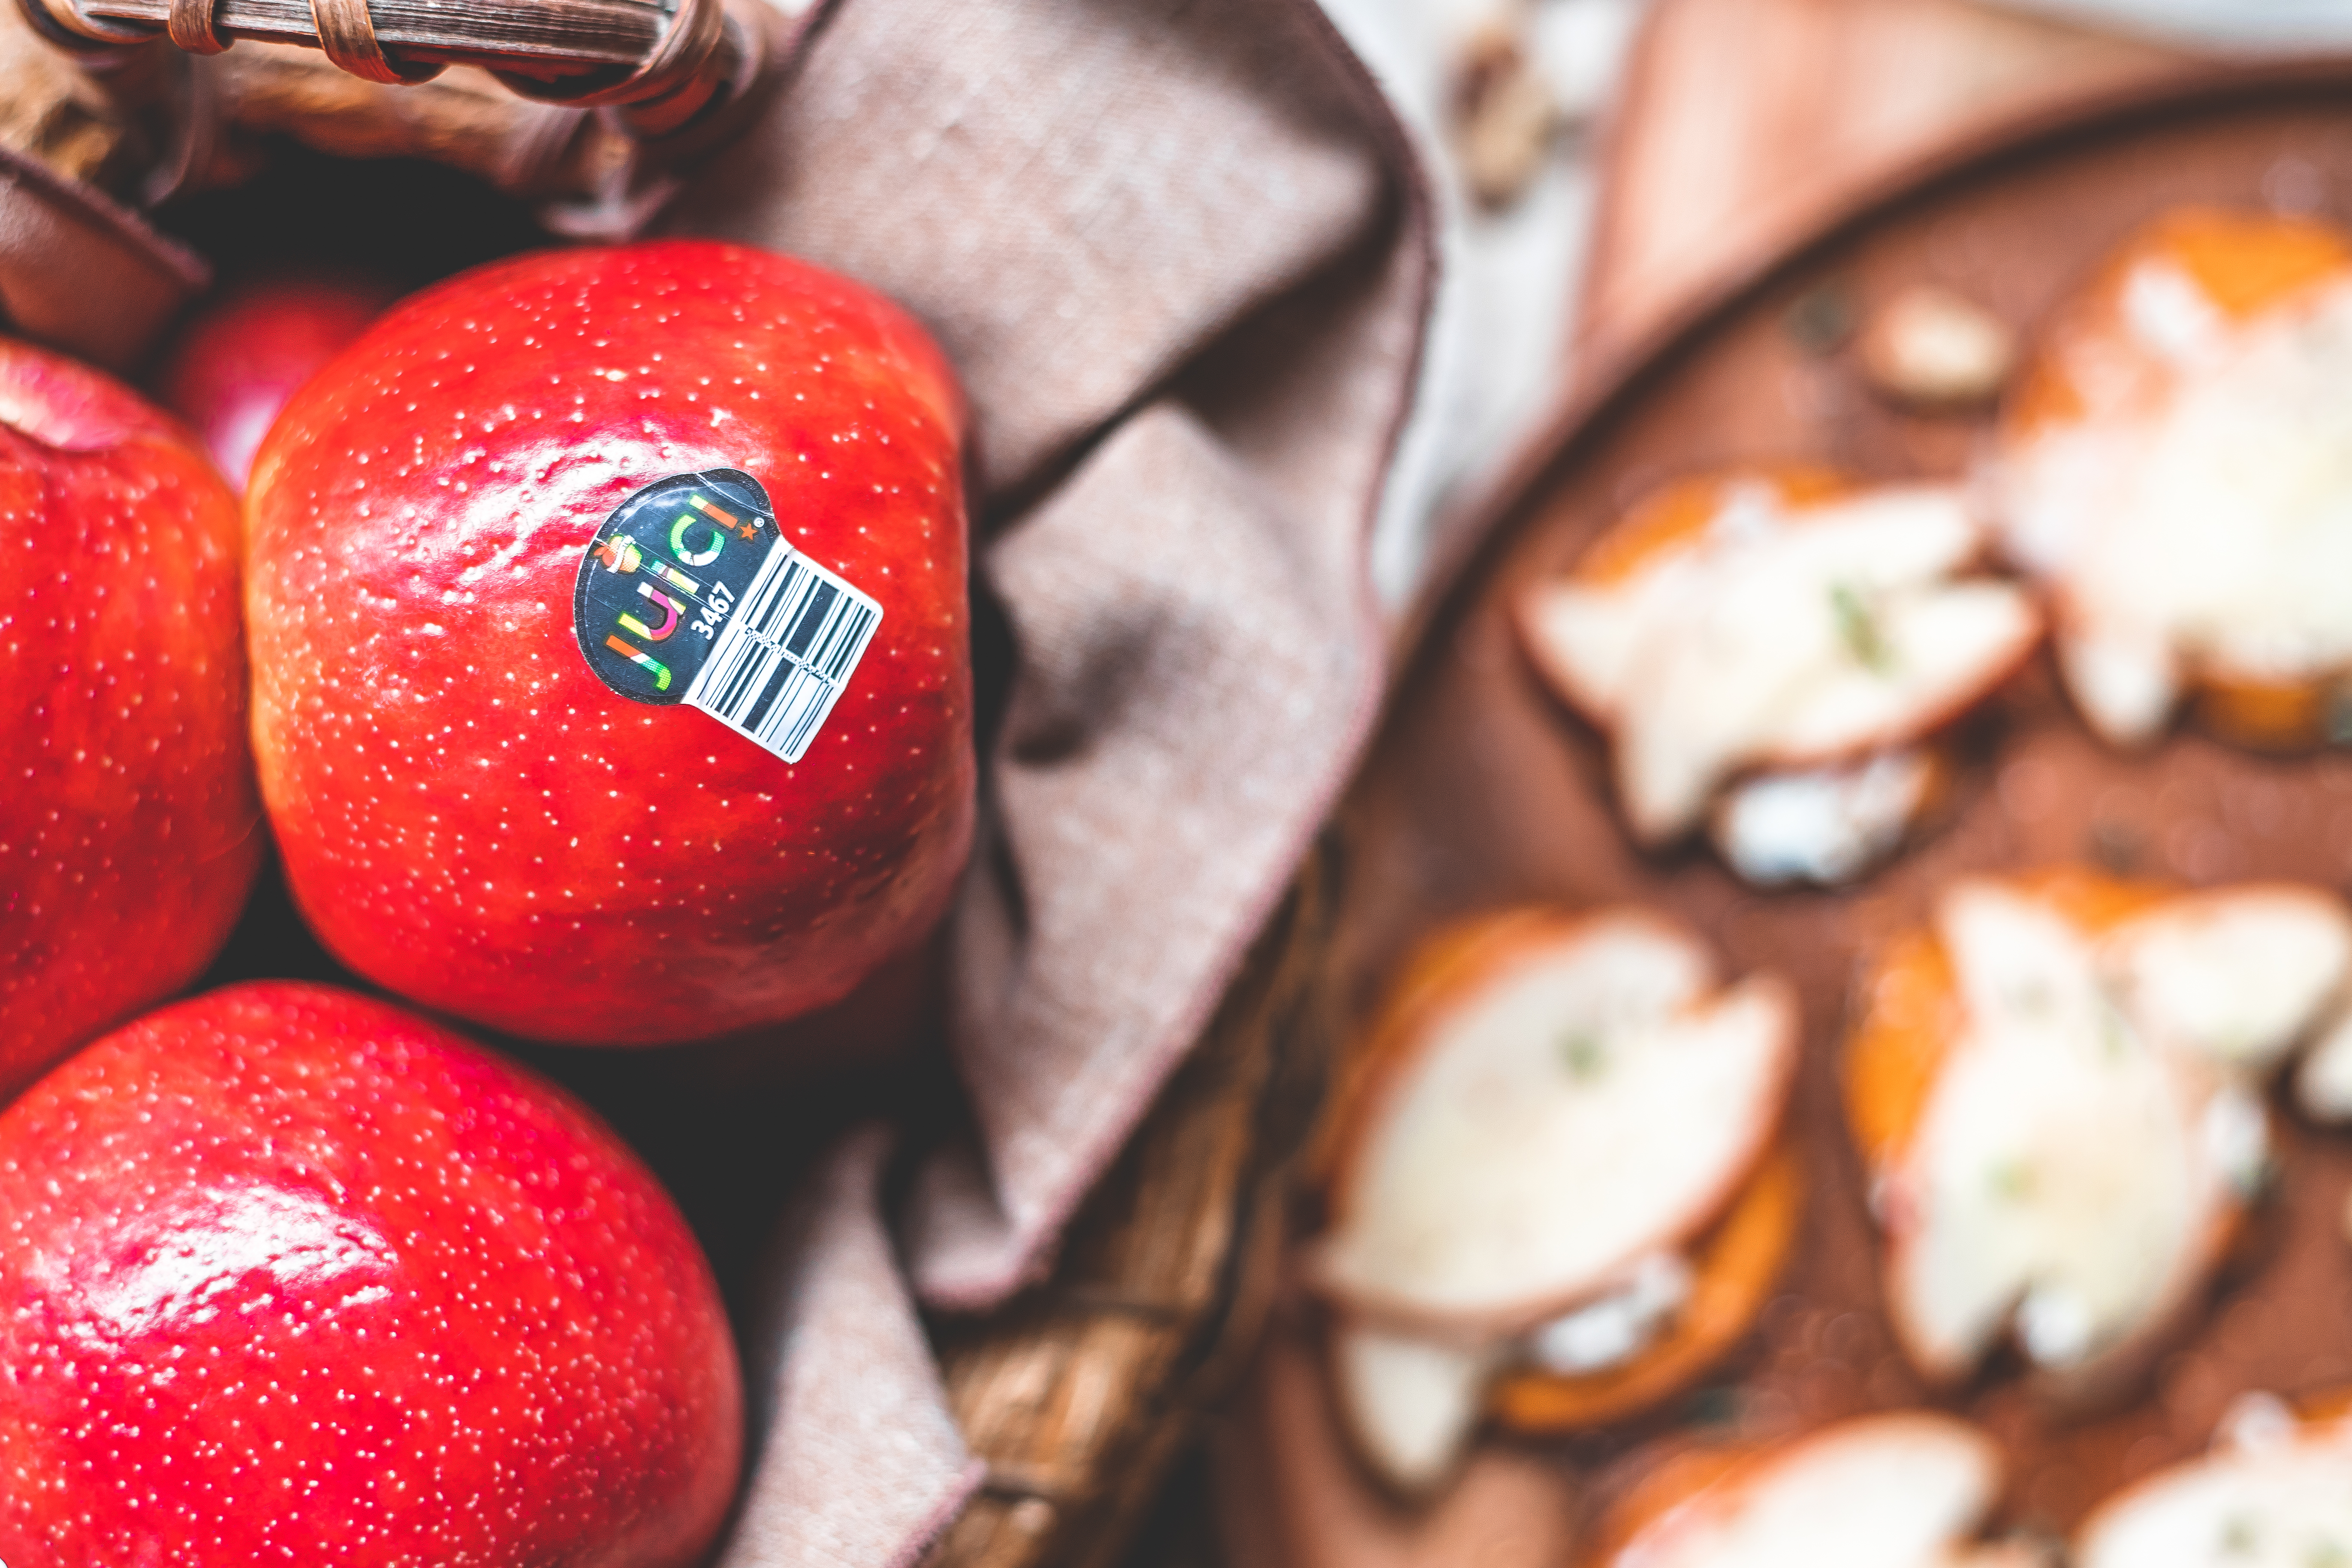 JUICI® Apples from Starr Ranch® Growers